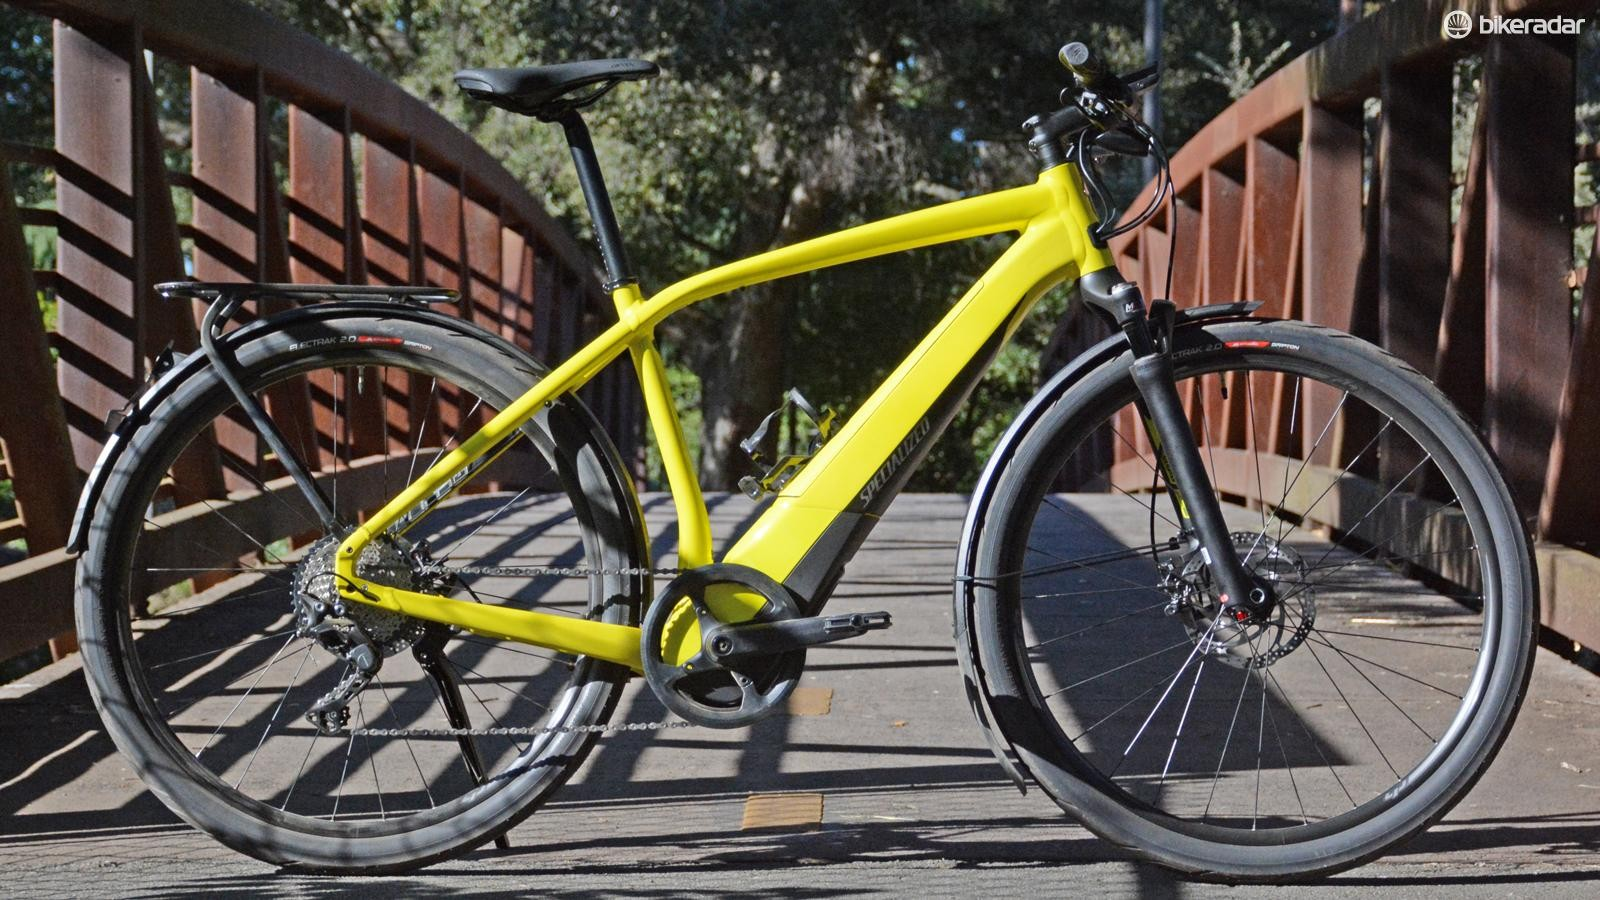 Specialized's Turbo Vado 6.0 is the highest in the range